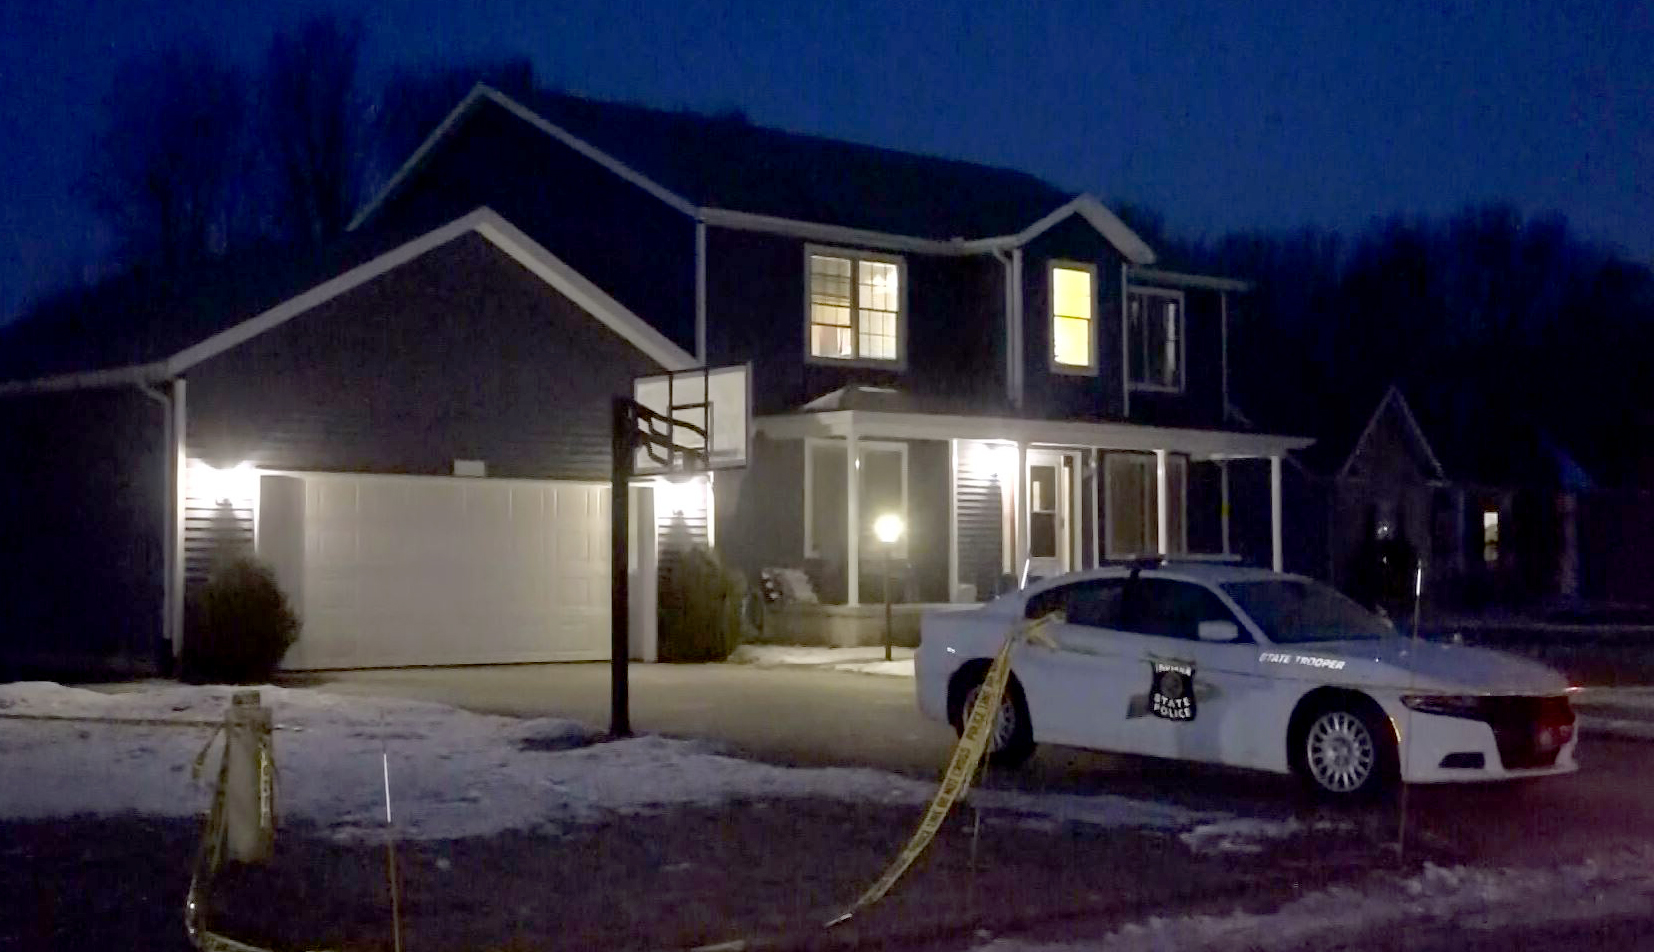 State trooper shot in his home as son, 11, detained on attempted murder charge